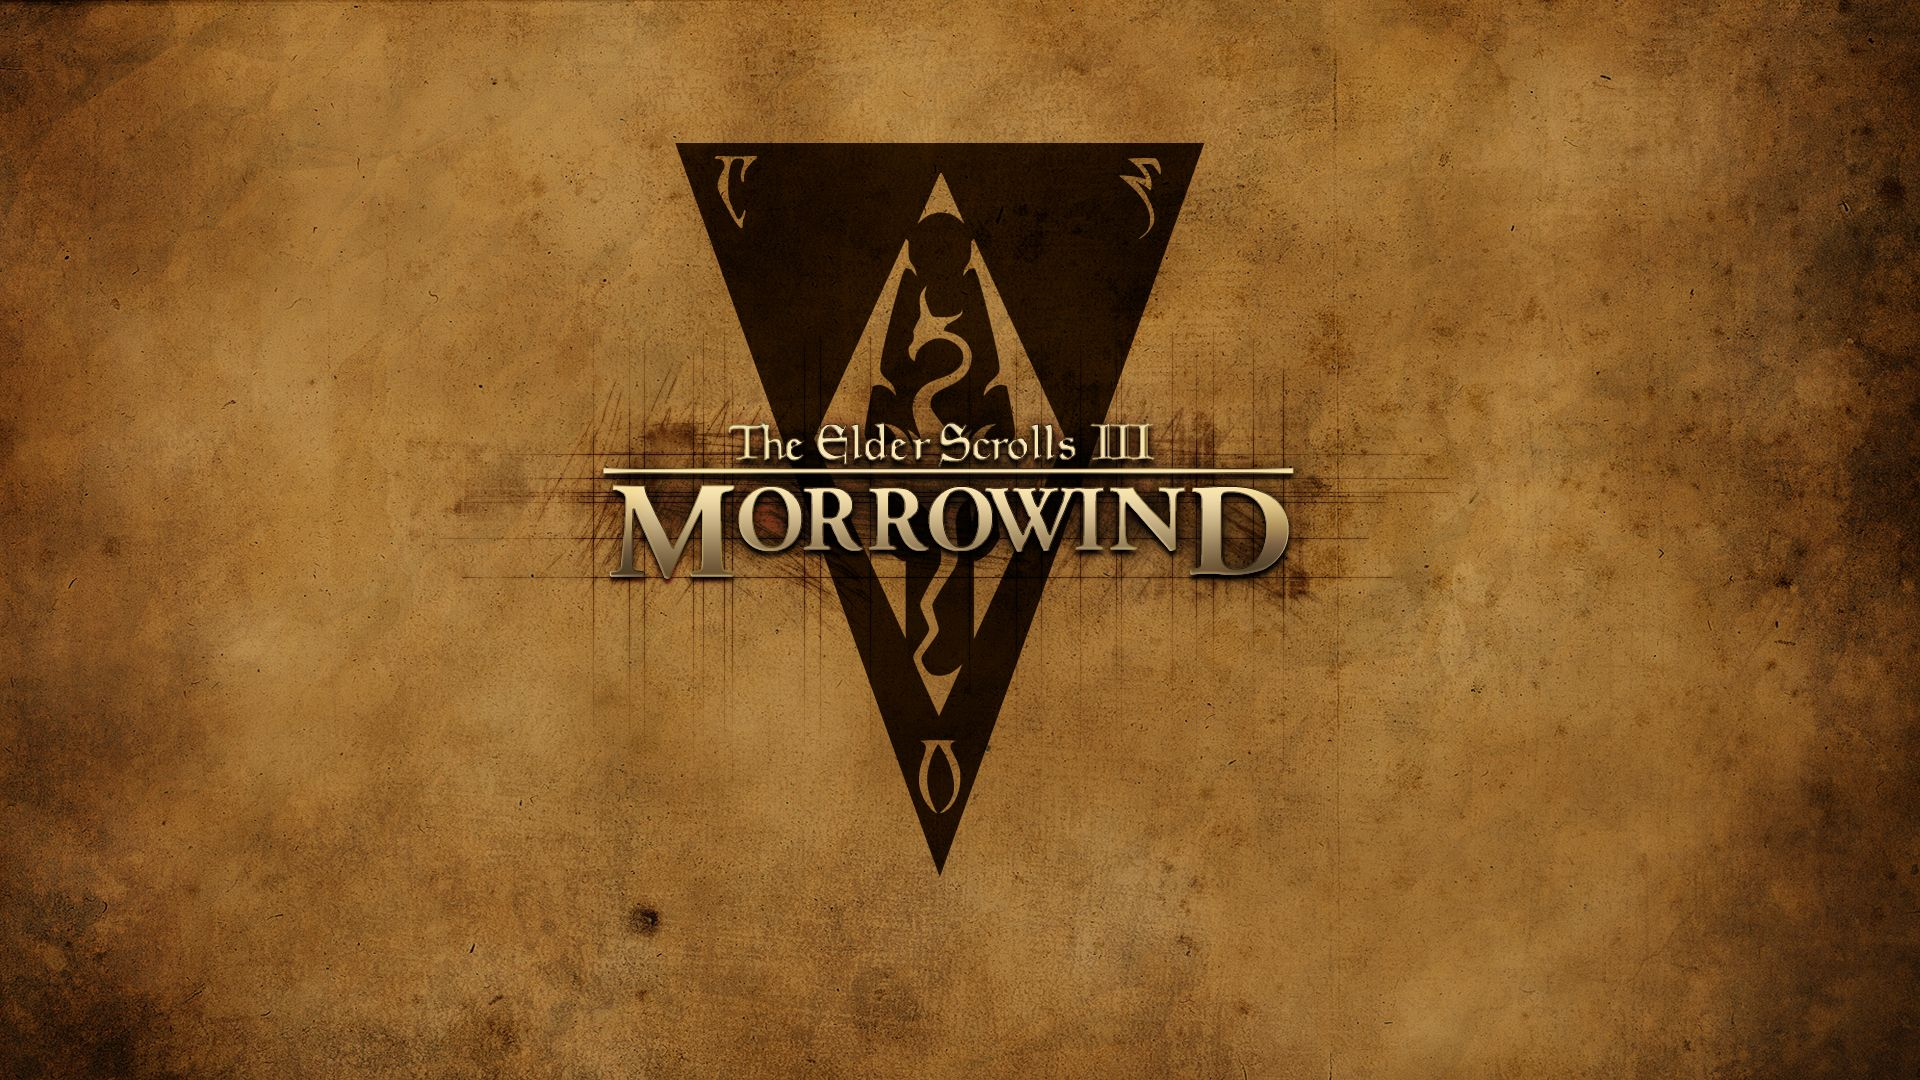 the-elder-scrolls-iii-morrowind-1.jpg